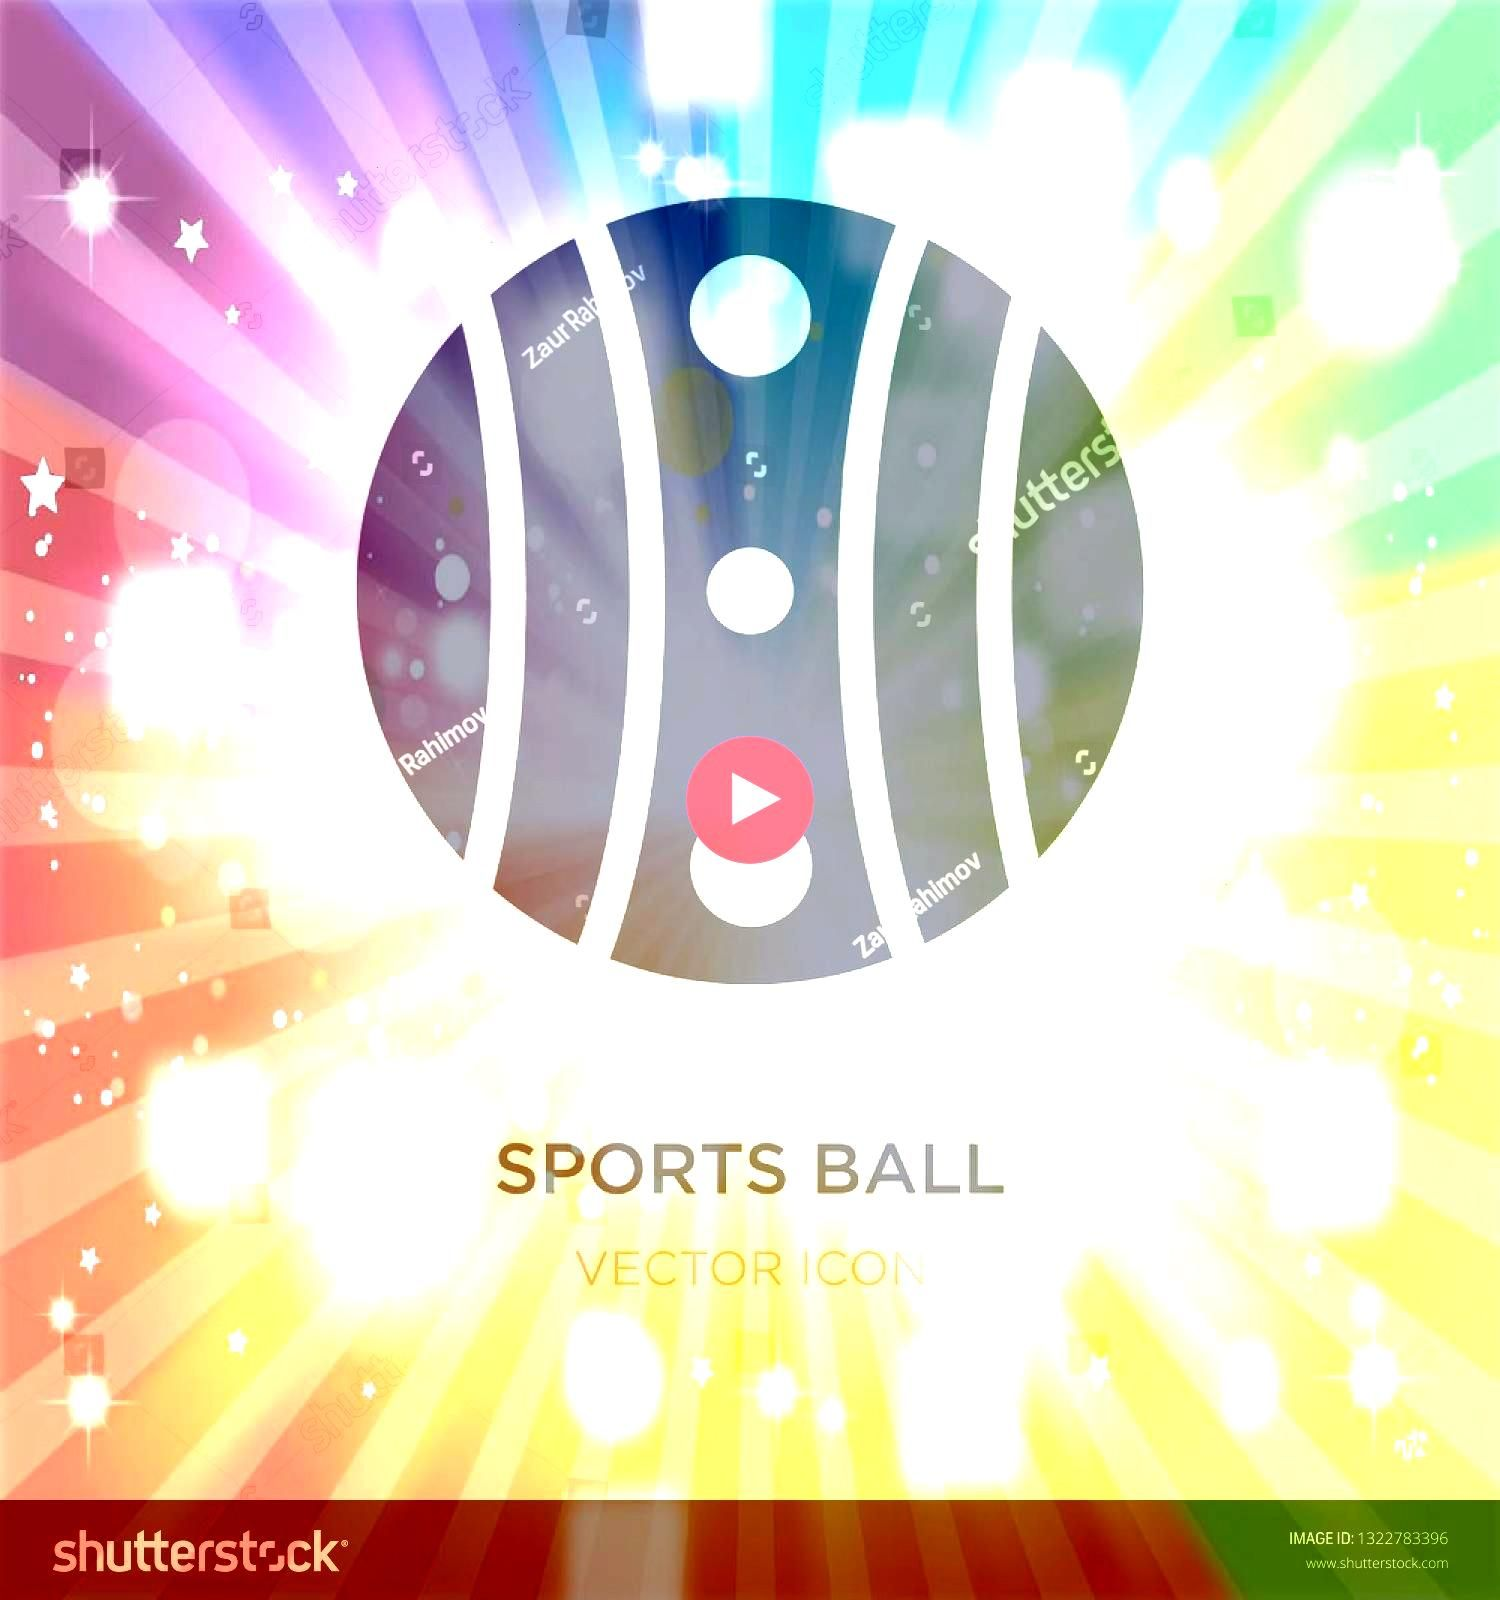 icon on white background Simple element illustration from Entertainment and arcade concept sports ball sign icon symbol design sports ball icon on white background Simple...